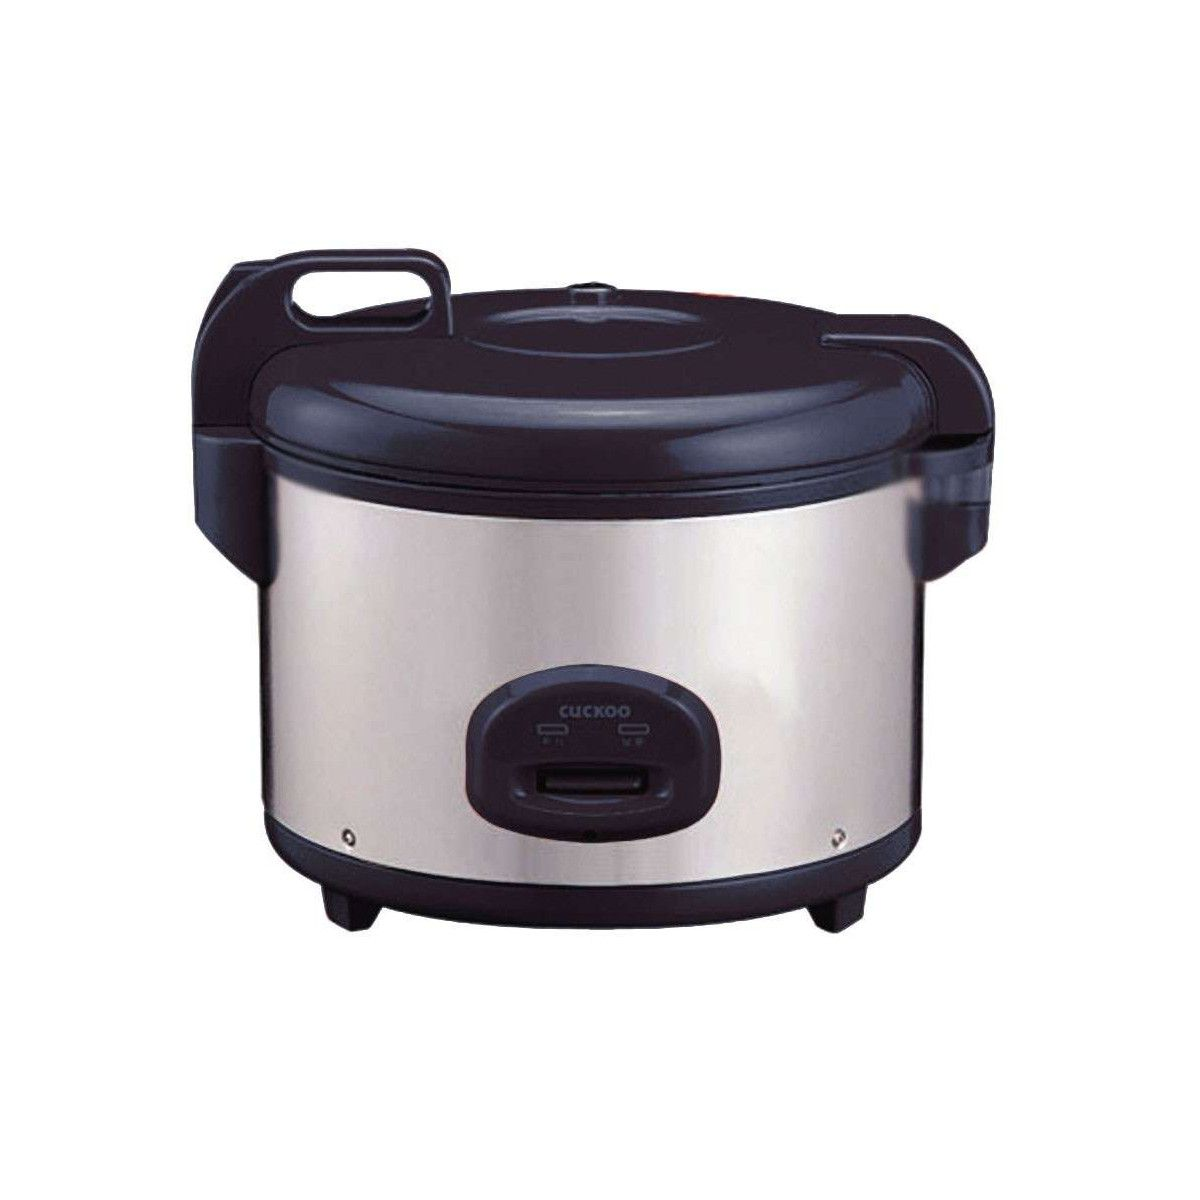 CUCKOO CUCKOO CUCKOO Rice Cooker CR3511 for 40 portions 6.3L 1